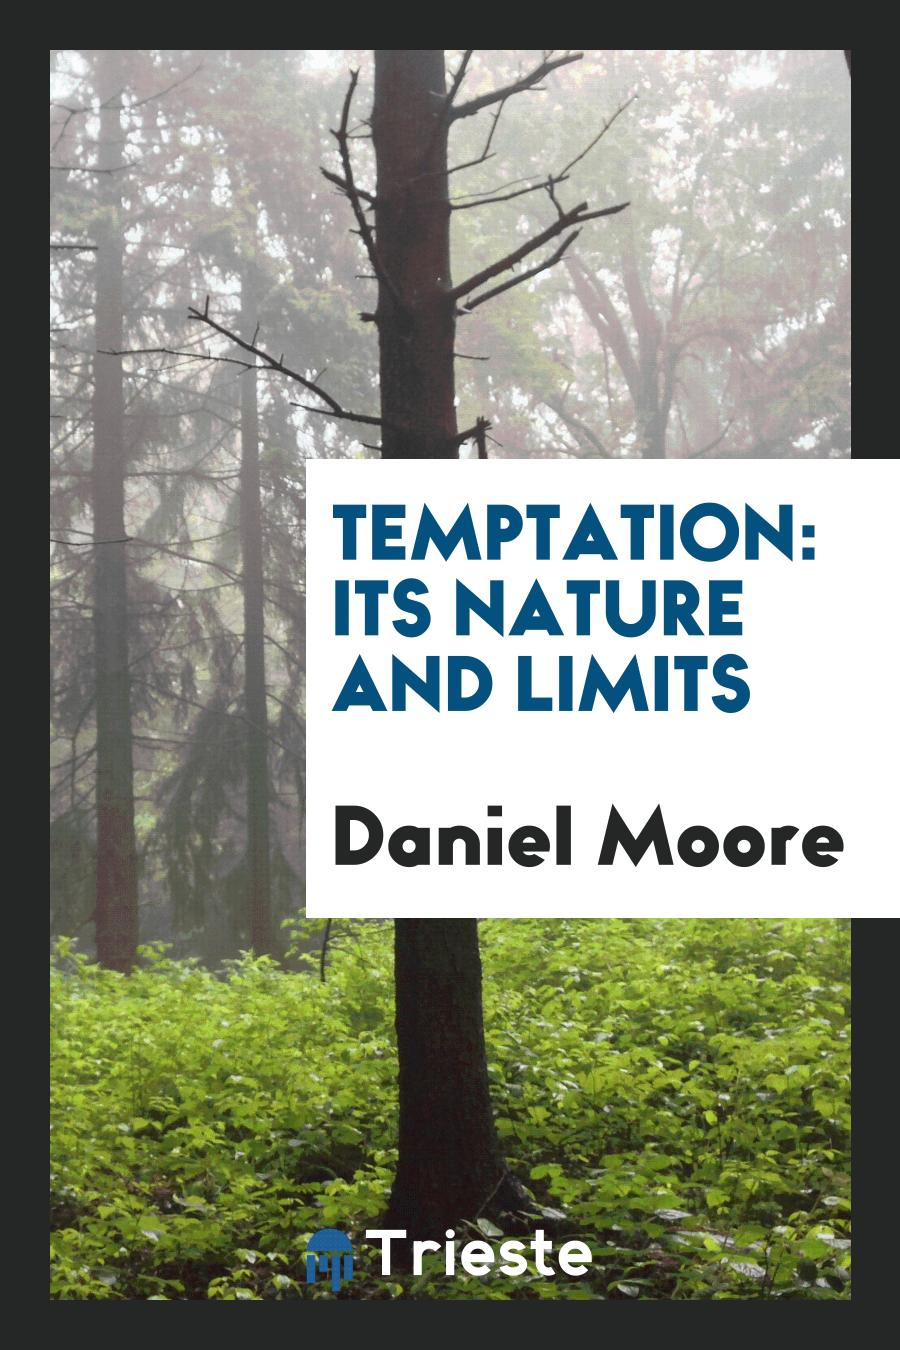 Temptation: Its Nature and Limits